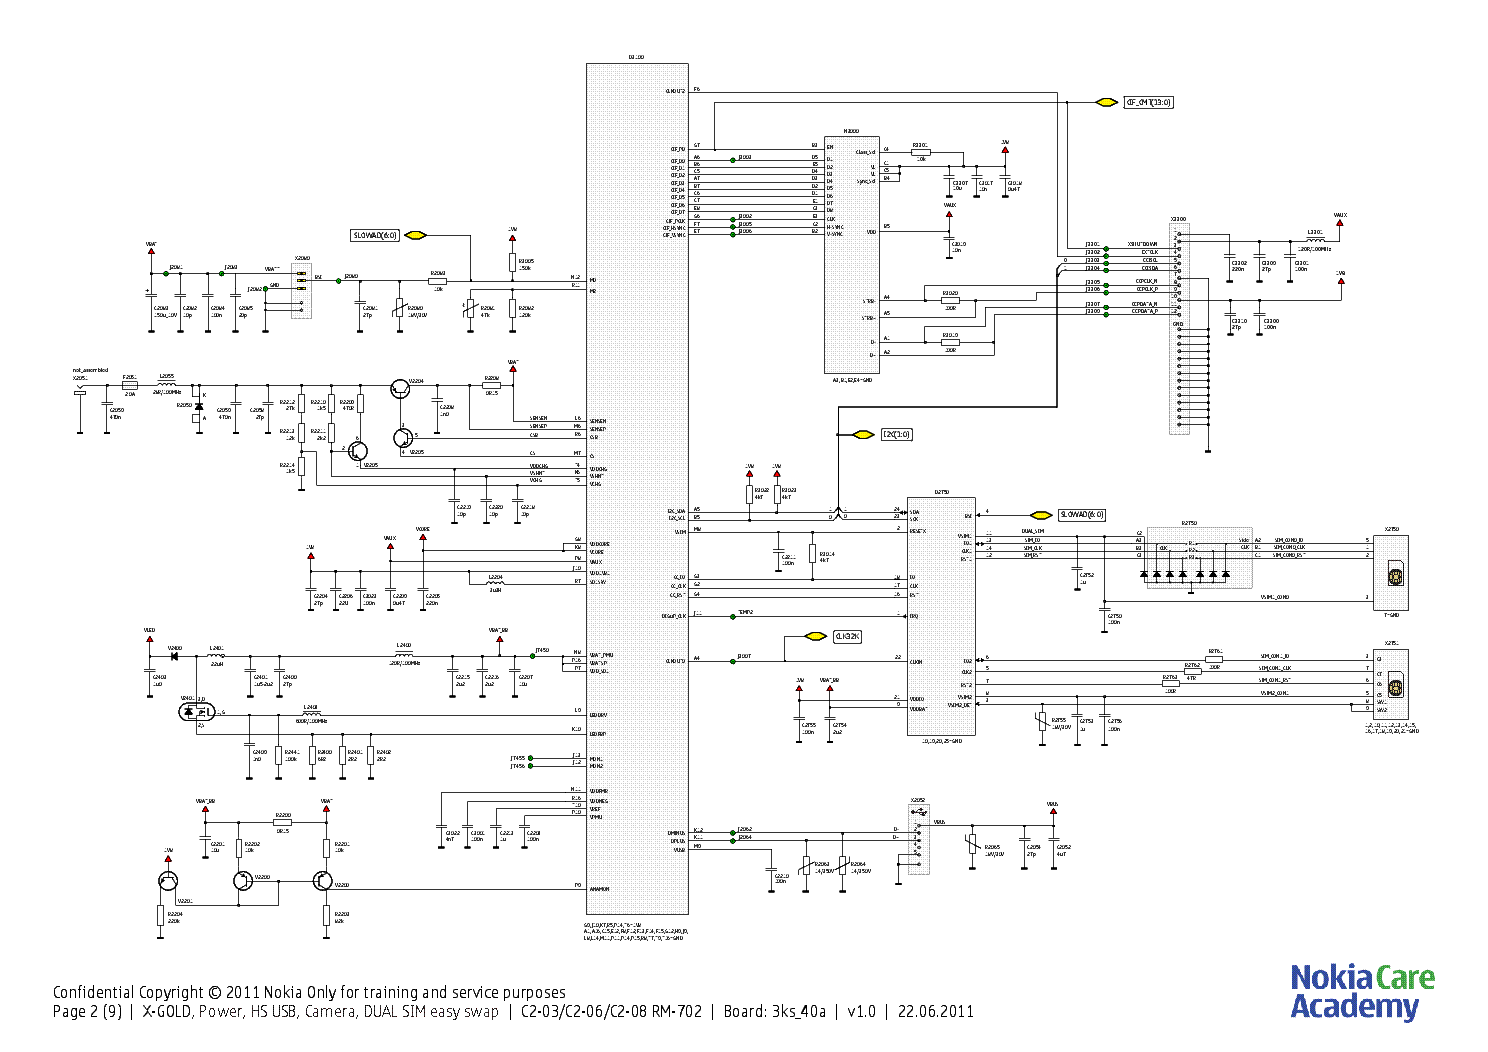 Peachy Circuit Diagram Of Nokia C2 01 Wiring Diagram G9 Wiring 101 Olytiaxxcnl